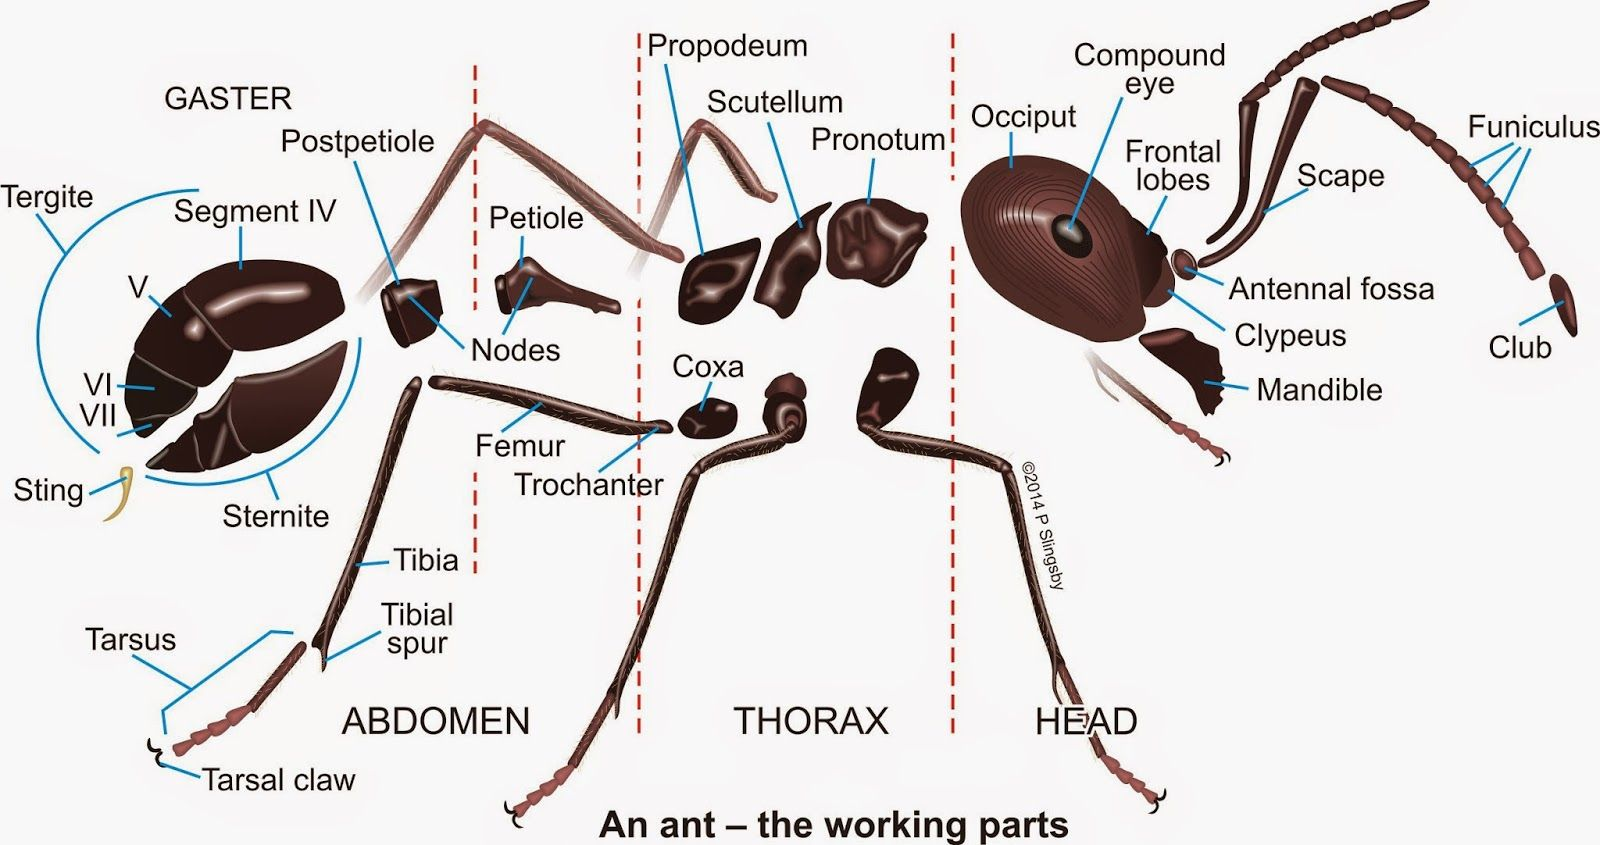 Ant Parts Diagram Domestic Wiring Diagrams 43moving 43parts Jpg 1600845 Anatomy Pinterest